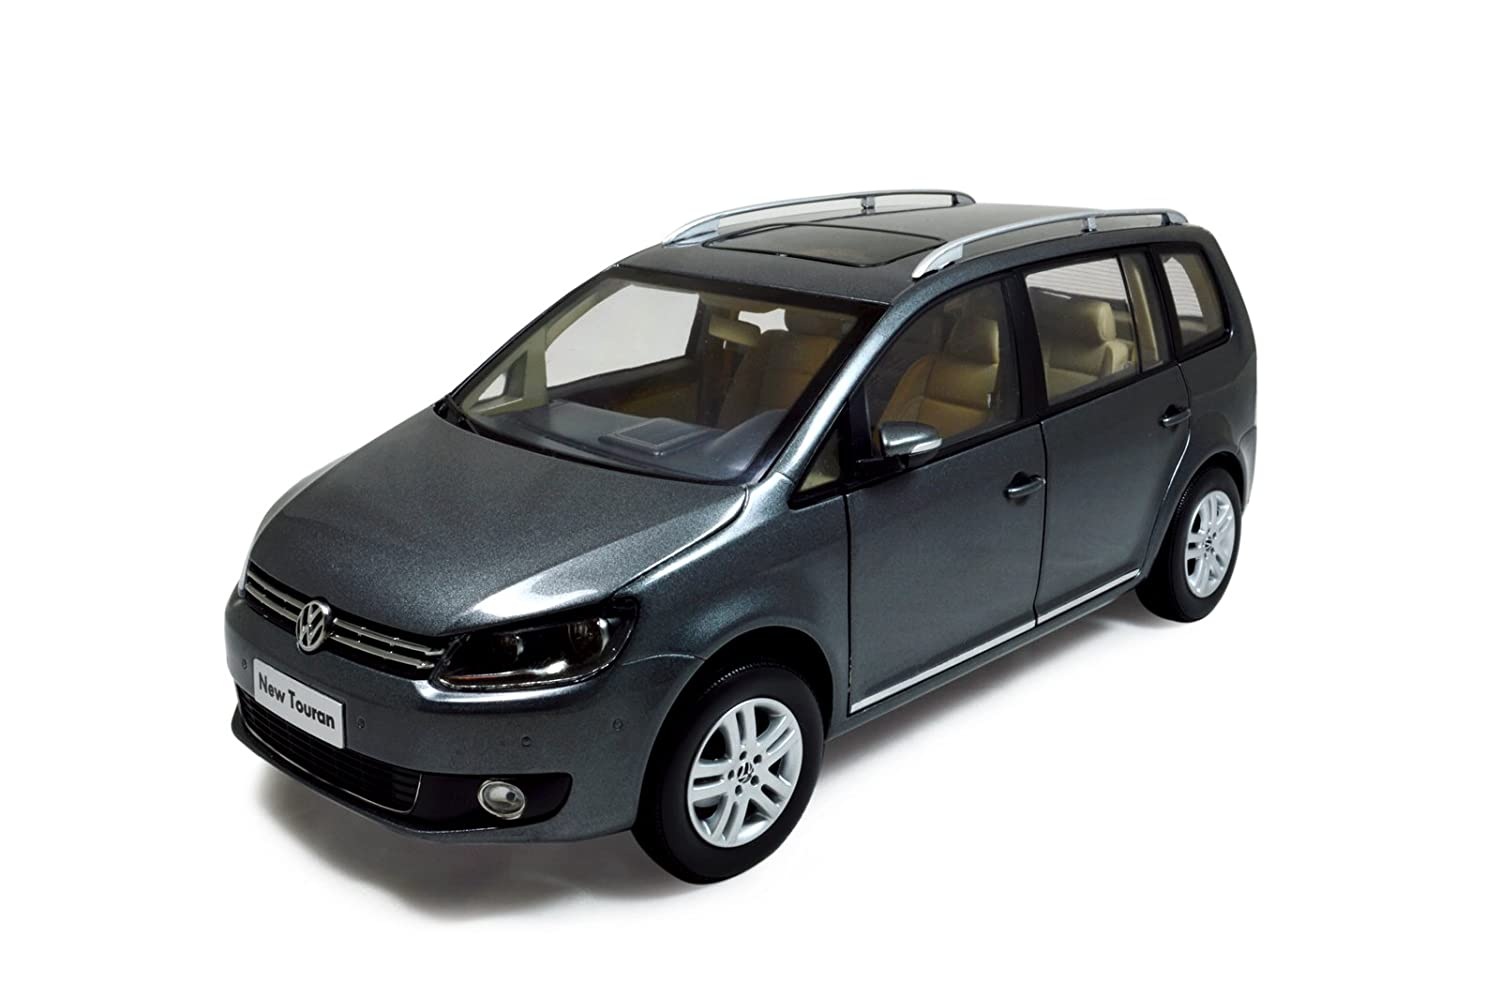 Amazon.com: Volkswagen Touran TSI 2013 MPV 1/18 Diecast Model Car by PaudiModel 2313GY: Home & Kitchen